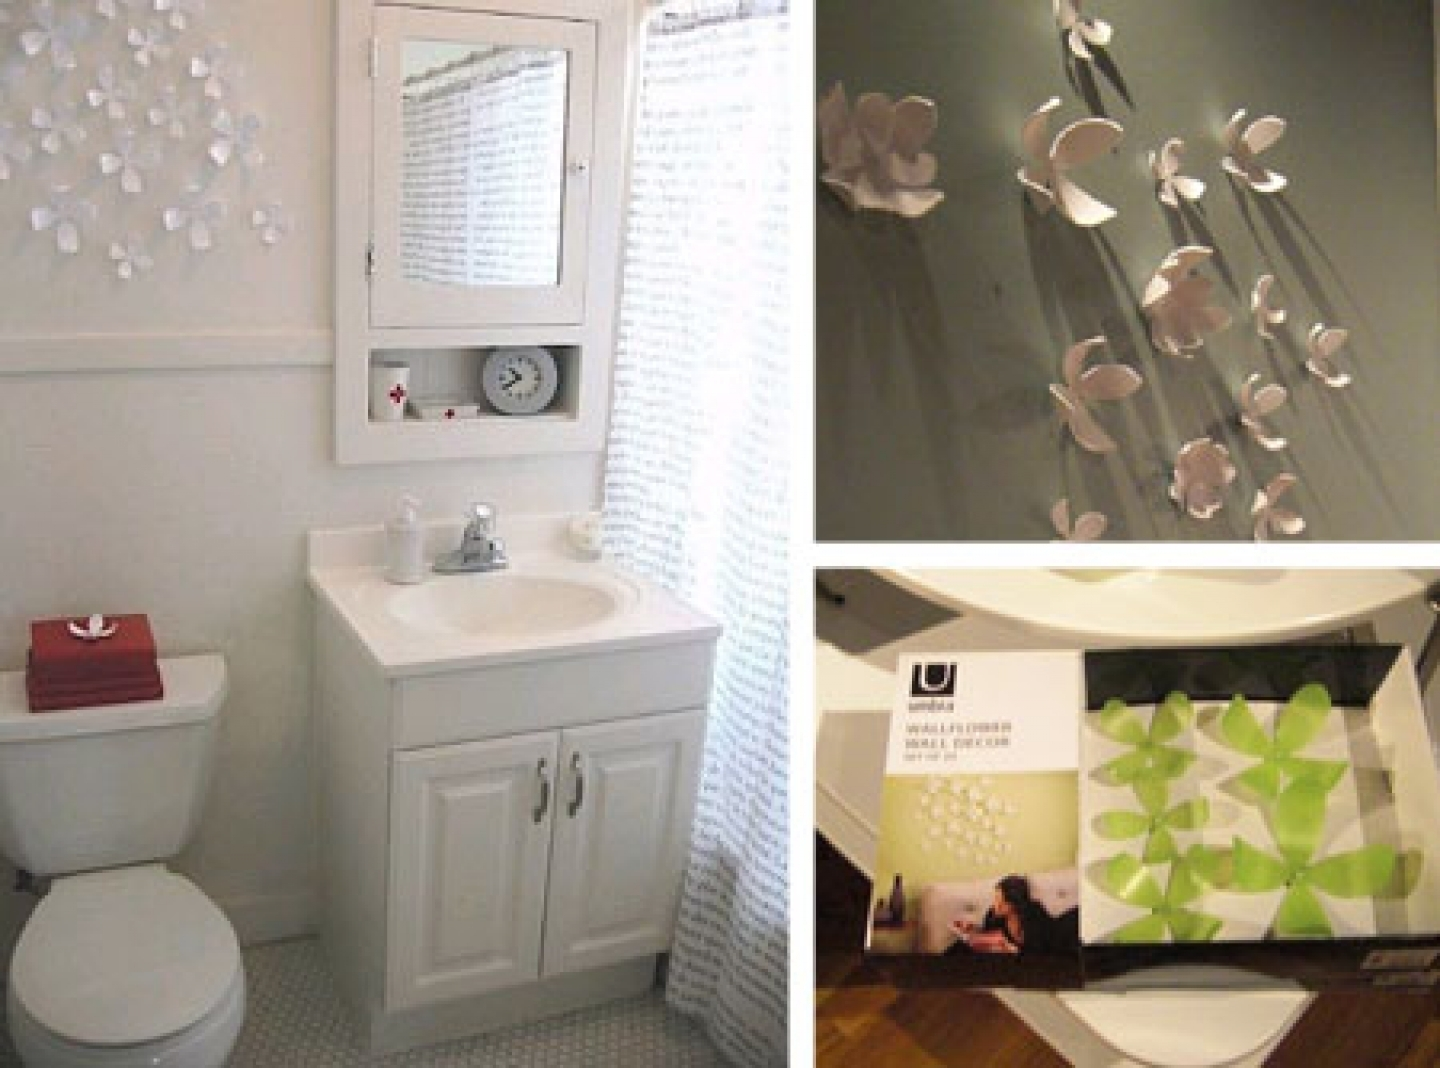 Wall Decor Ideas For The Bathroom • Walls Decor Throughout 2017 Wall Accents For Bathrooms (View 14 of 15)